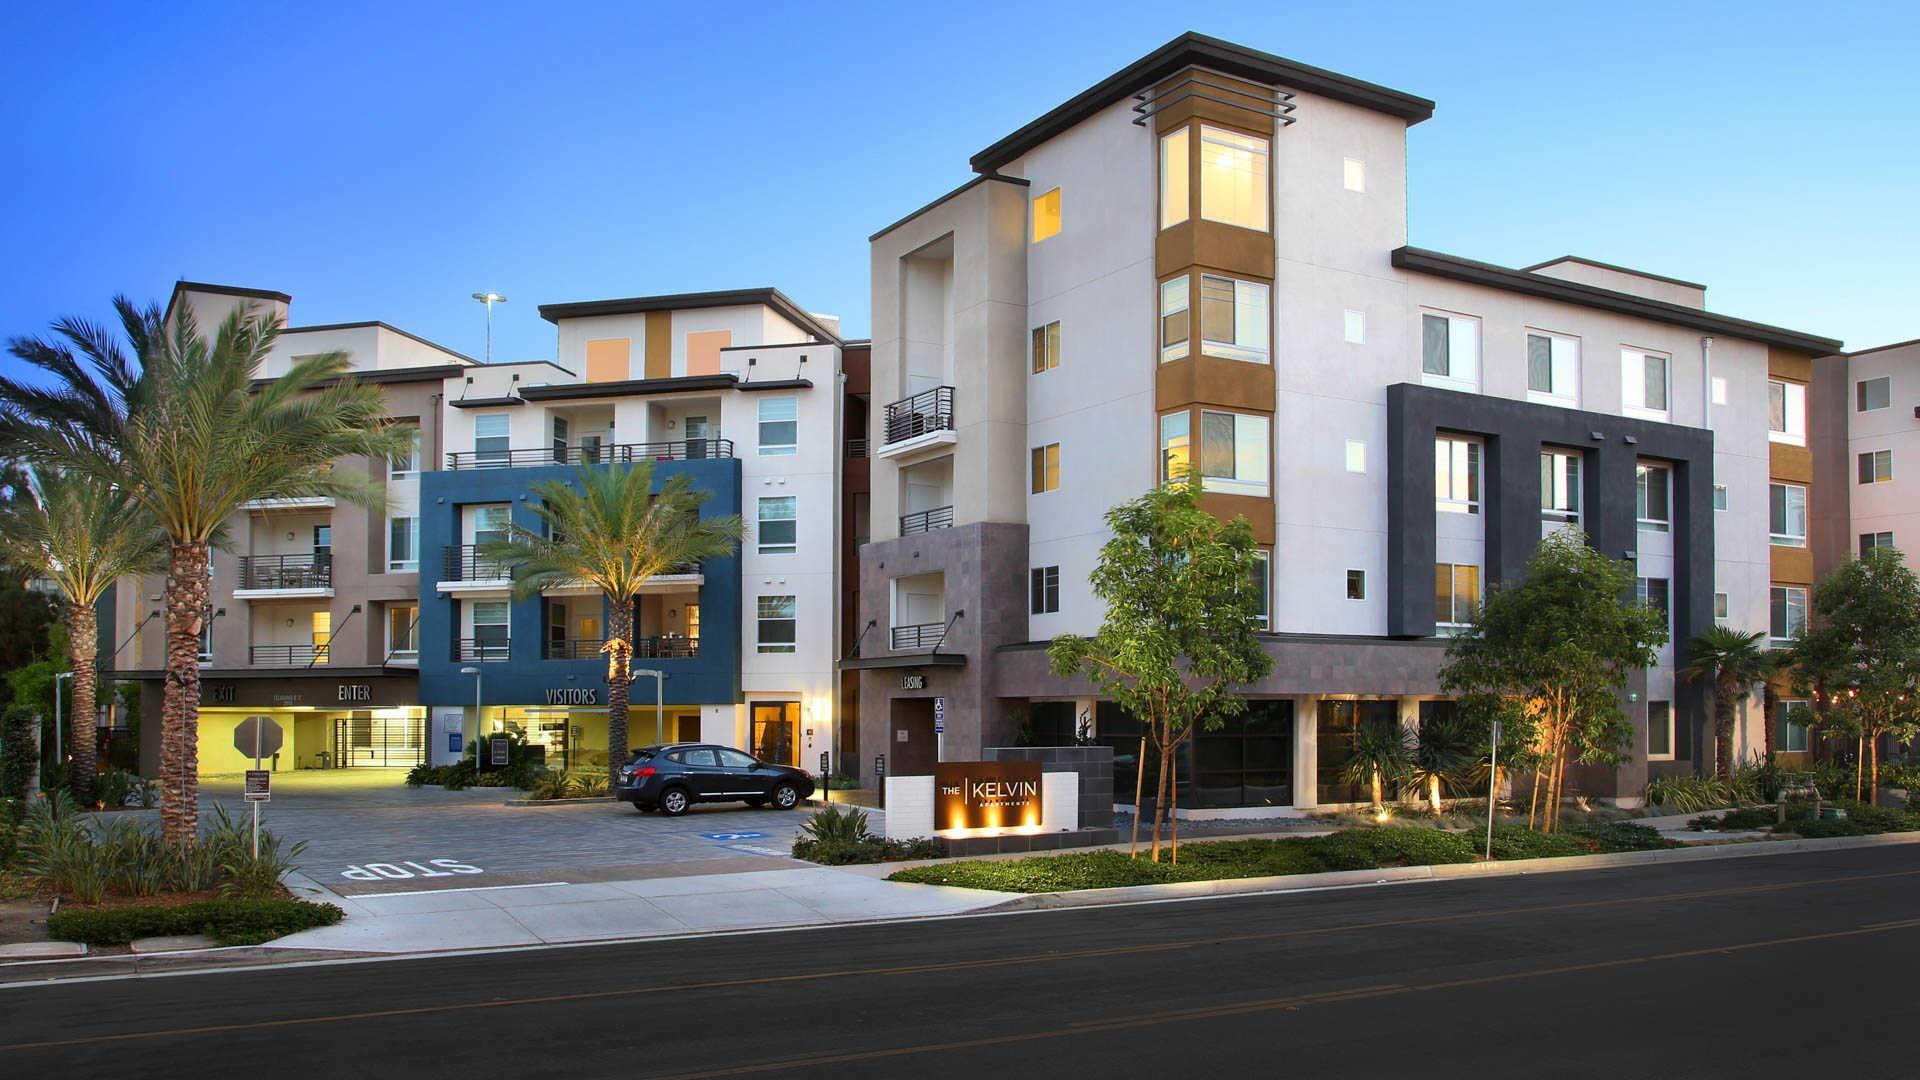 2 Bedroom Apt The Kelvin Apartments Irvine Ca Walk Score